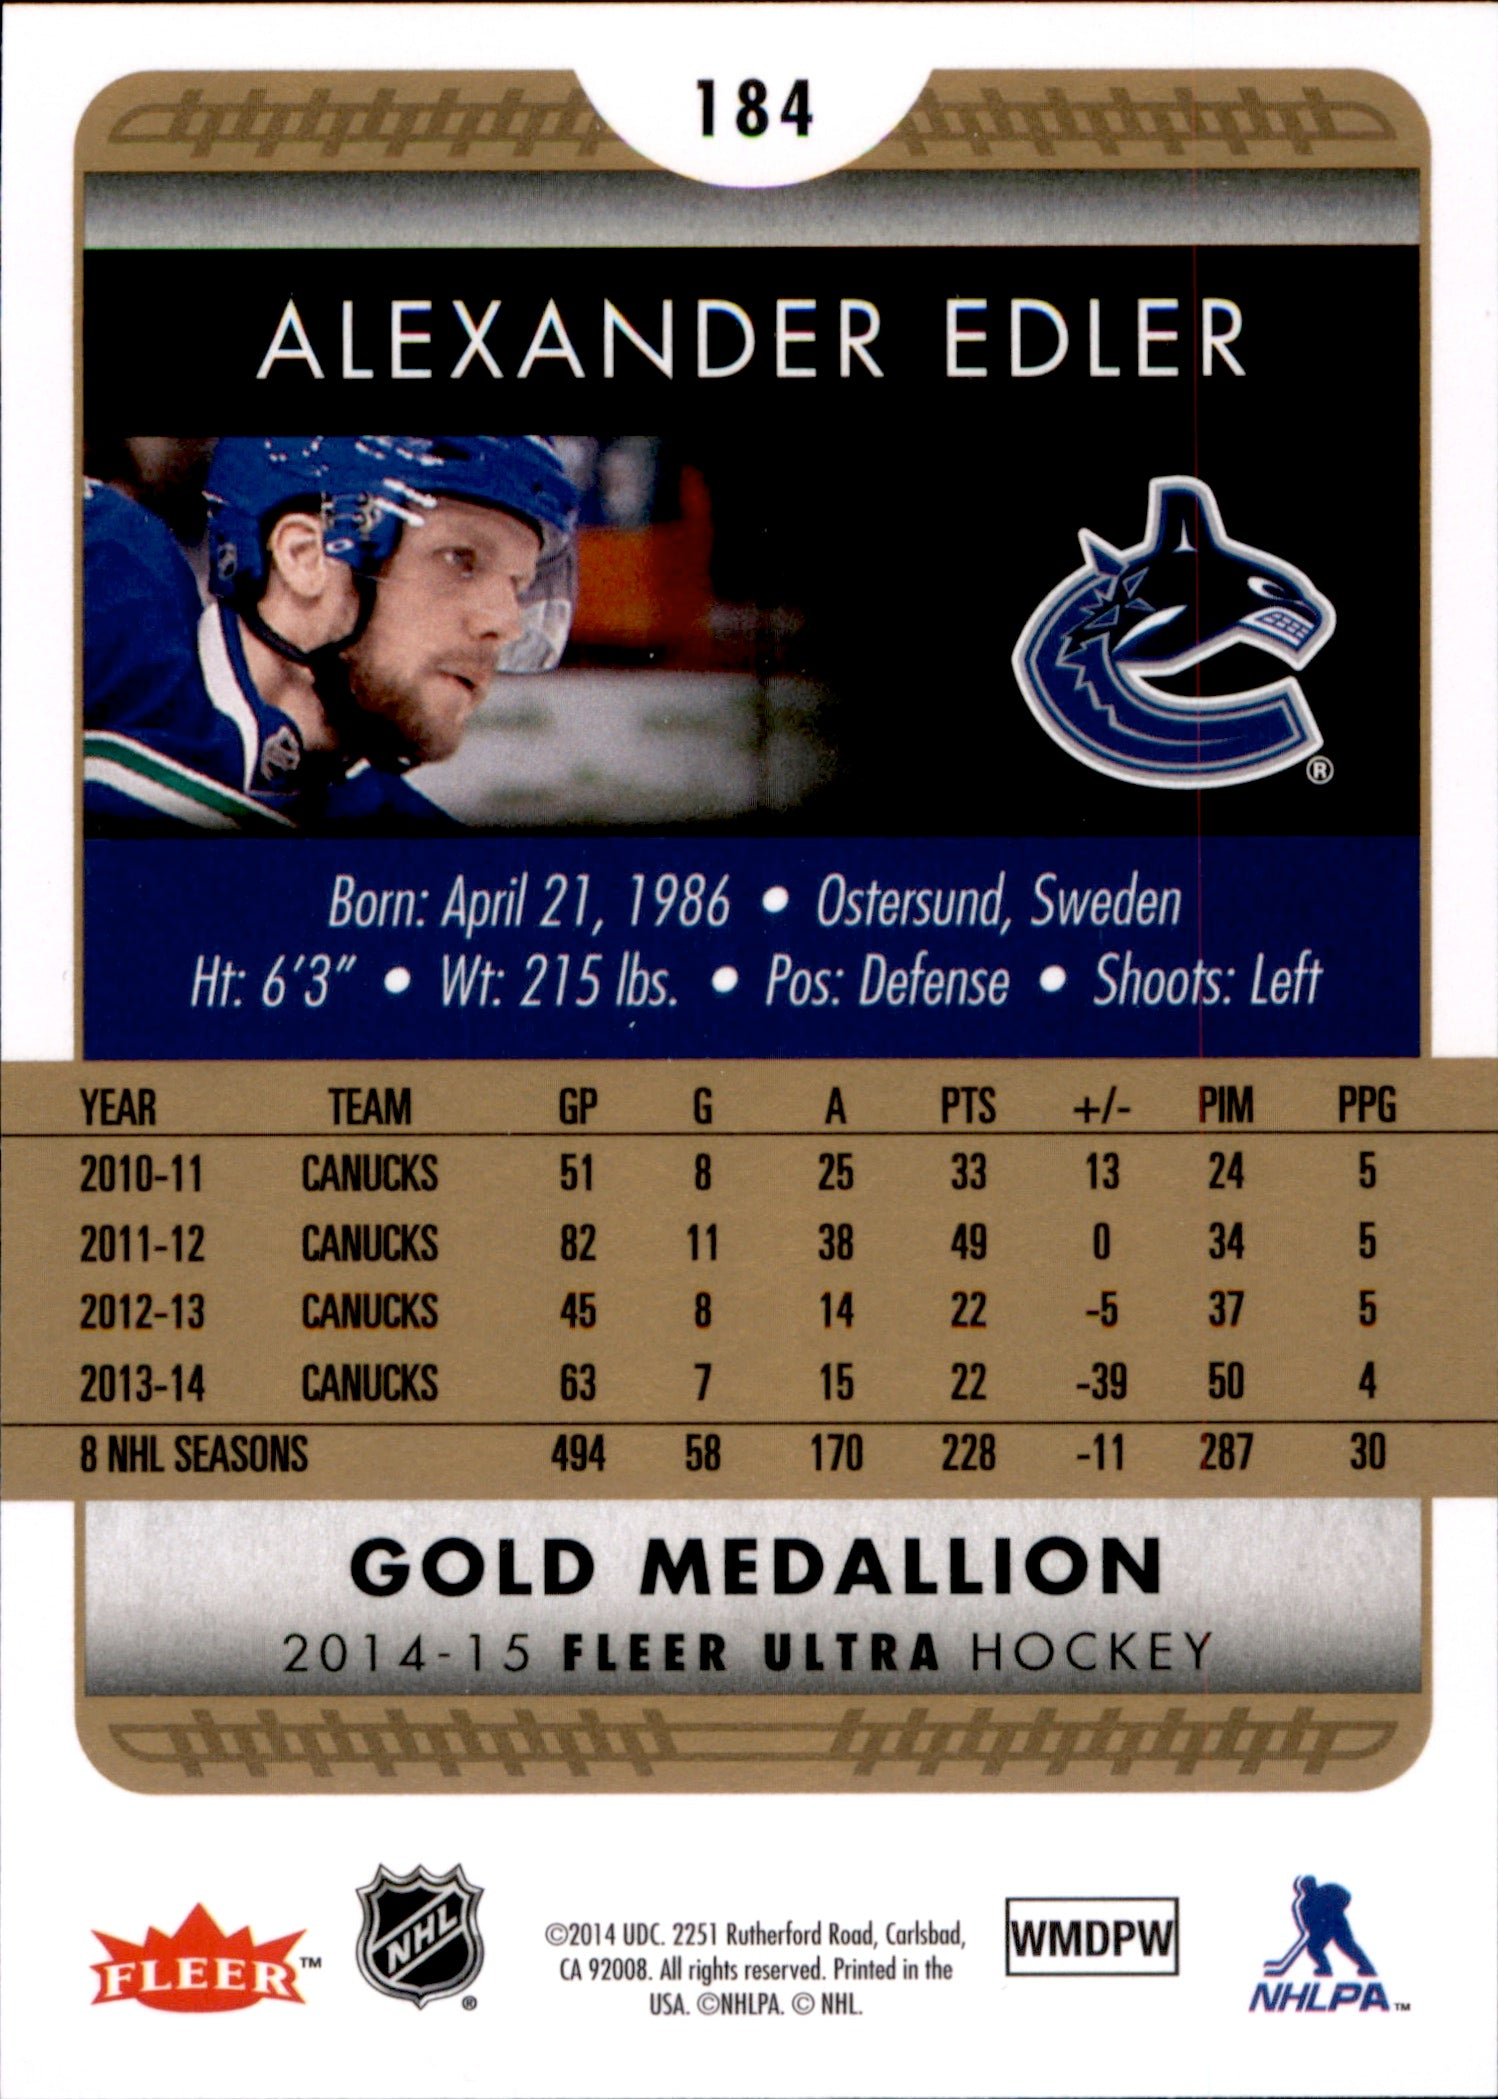 2014-15 Fleer Ultra Gold Medallion #184 Alexander Edler | Eastridge Sports Cards